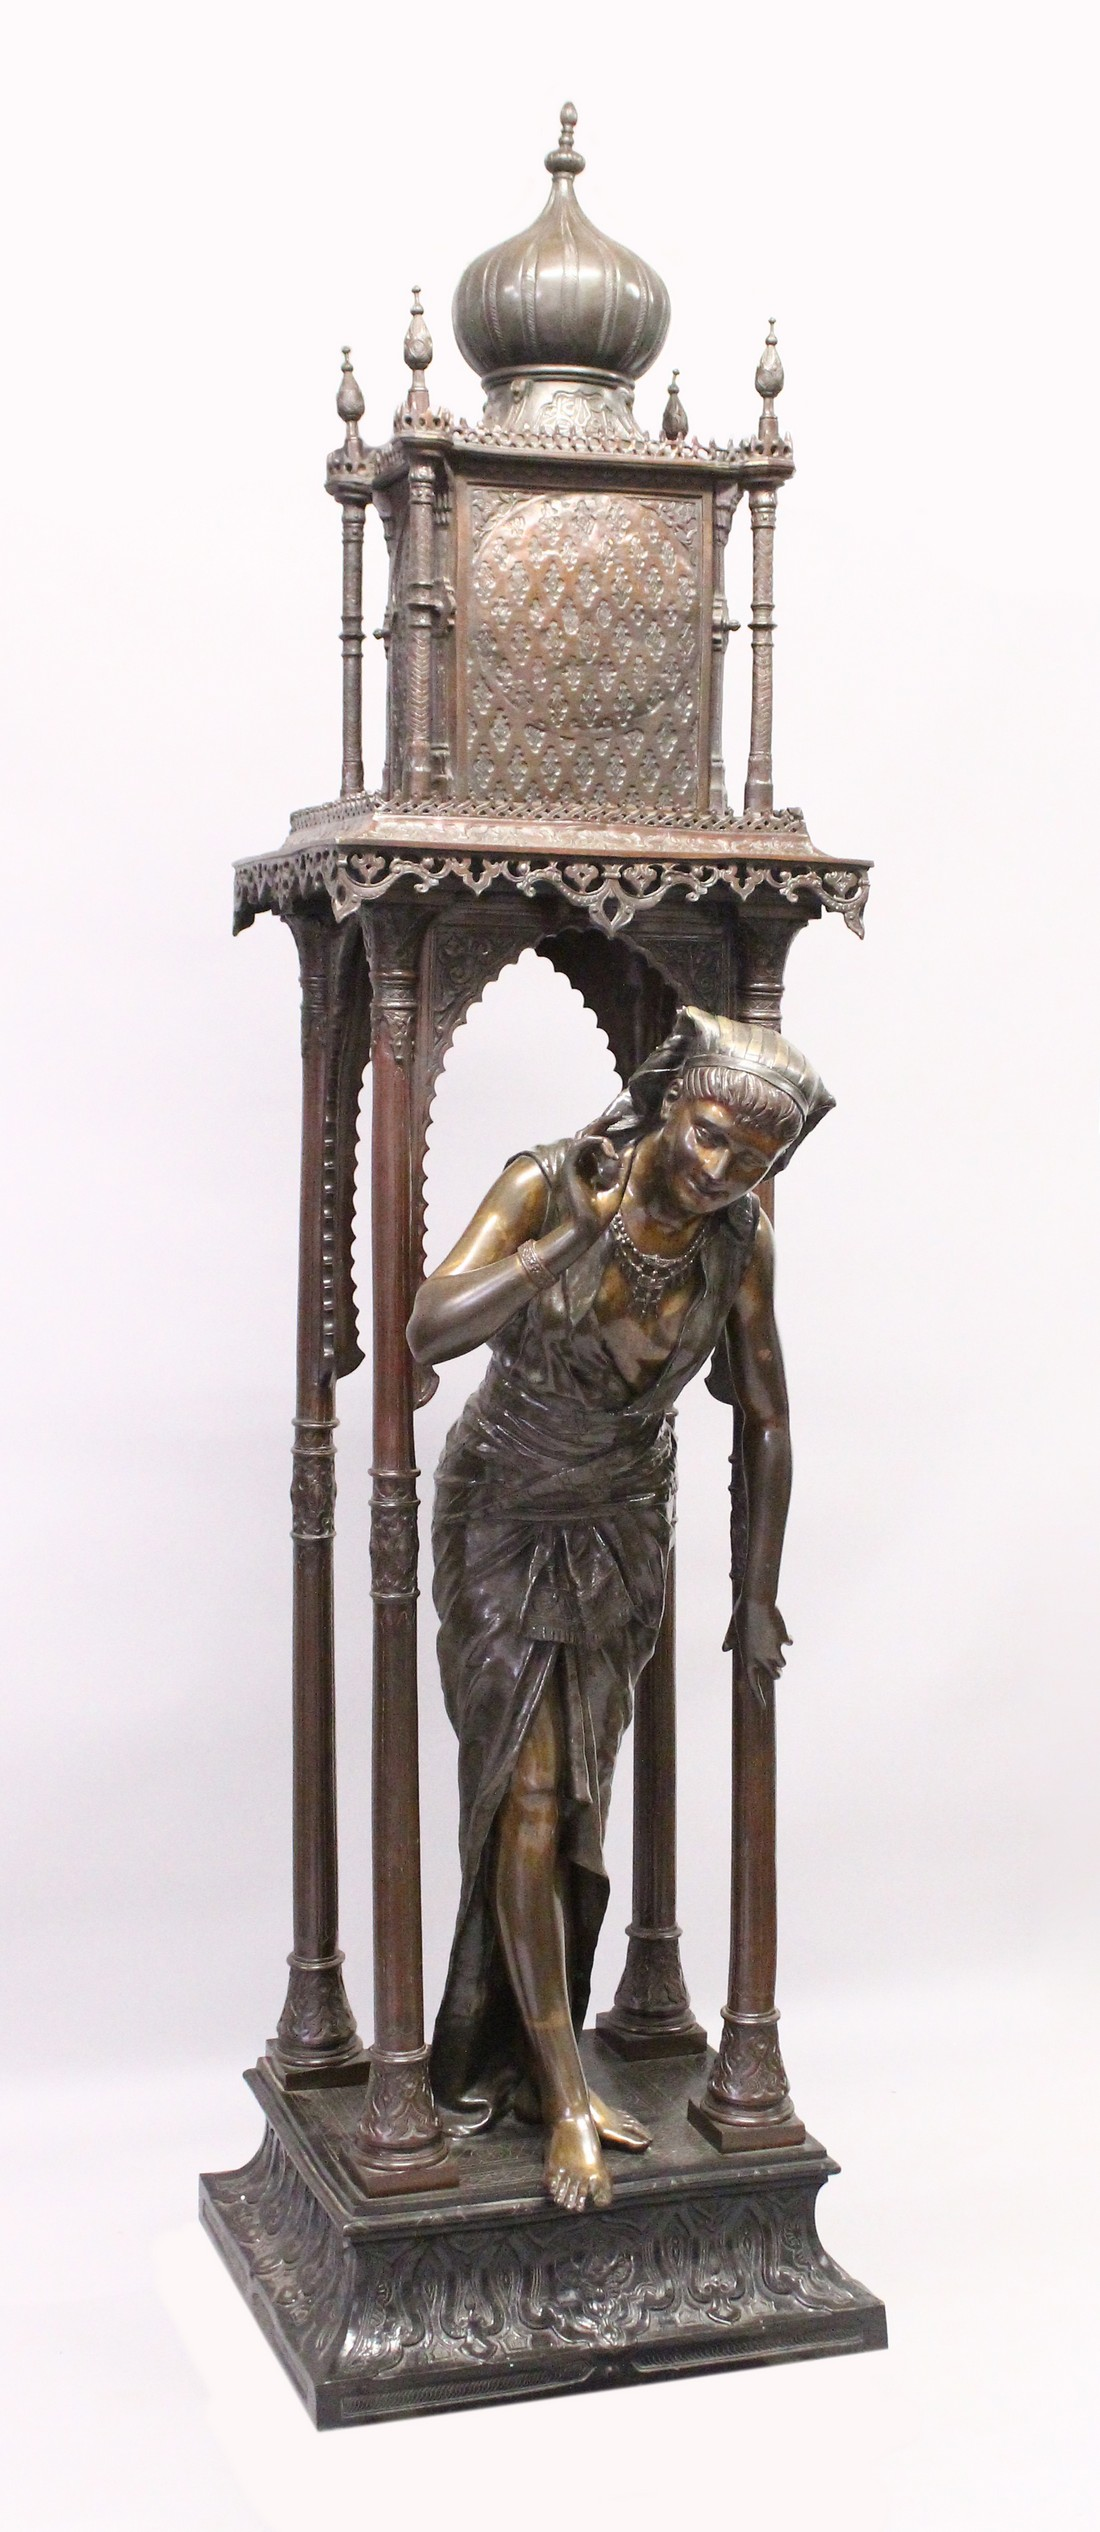 A SUPERB LARGE 19TH CENTURY FRENCH BRONZE OF AN ISLAMIC YOUNG LADY standing in an arbour with four